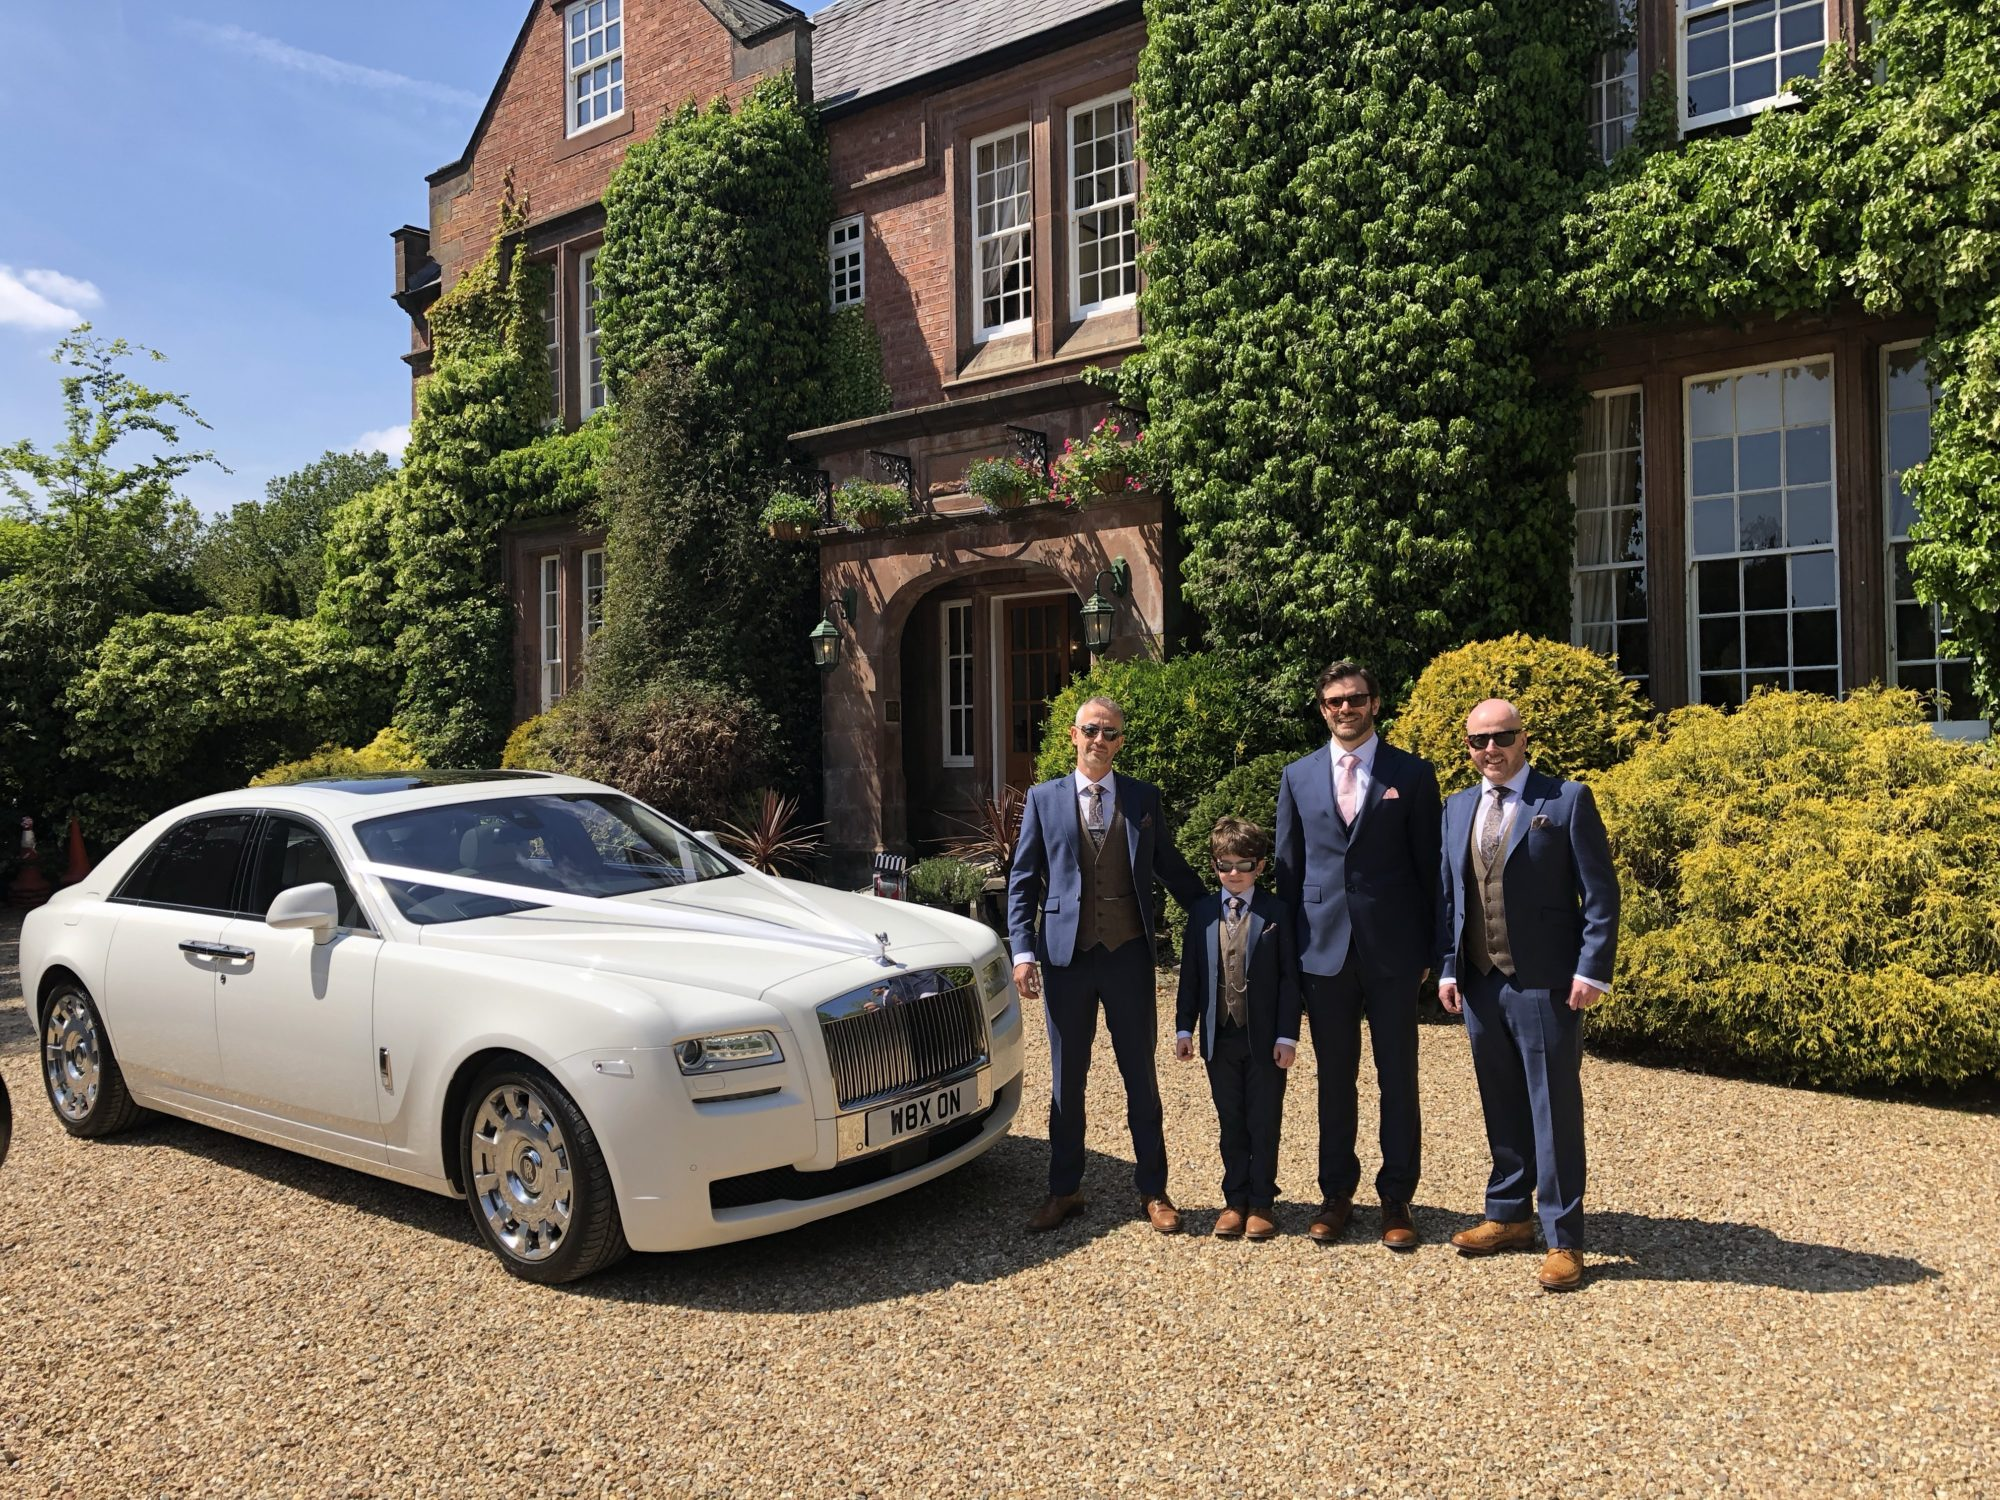 Red Carpet Cars | Luxury Wedding Car Hire North West | Rolls Royce and Groomsmen